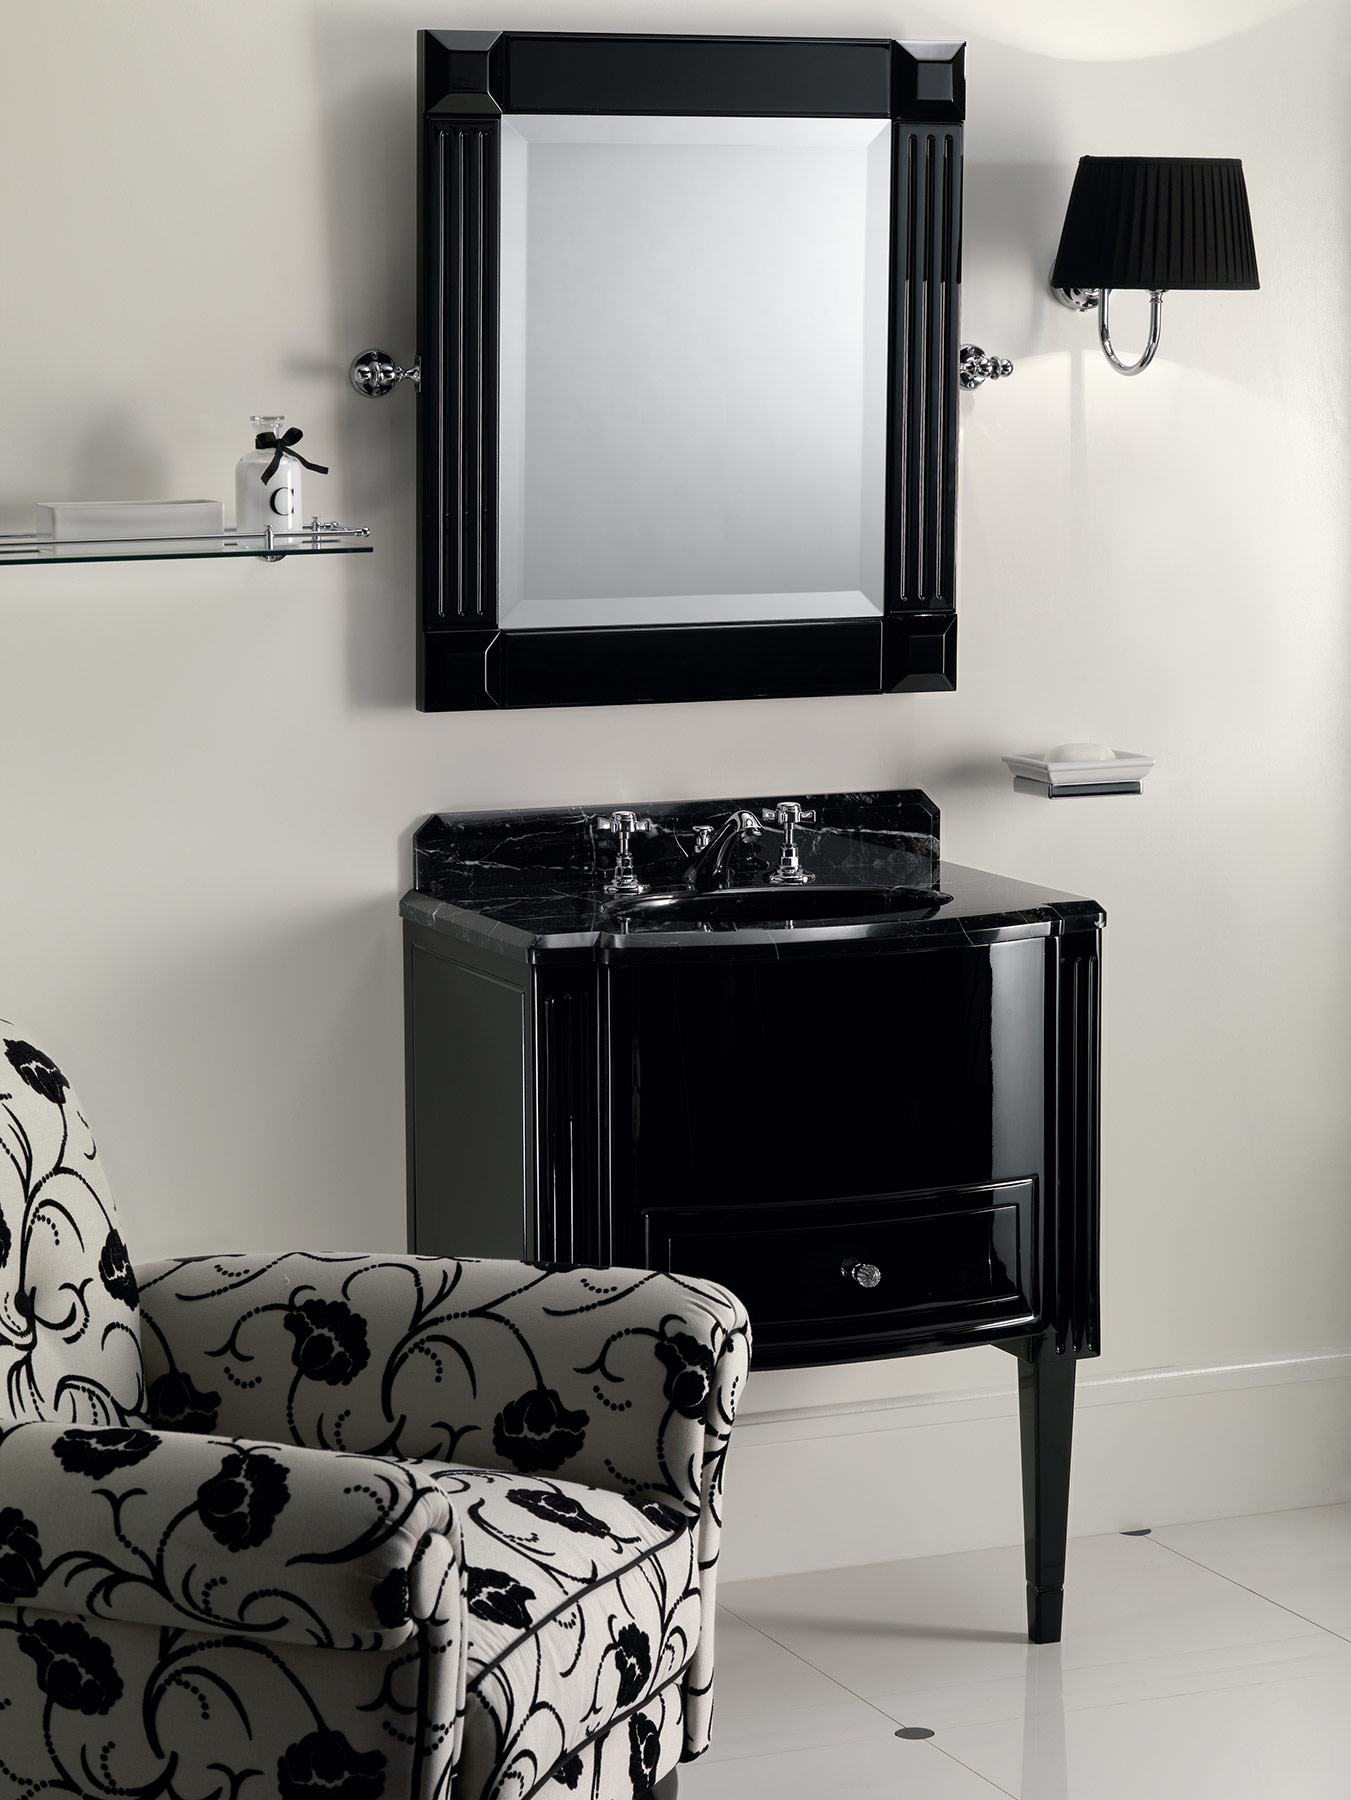 Transitional Domino Wall Mount Vanity Unit